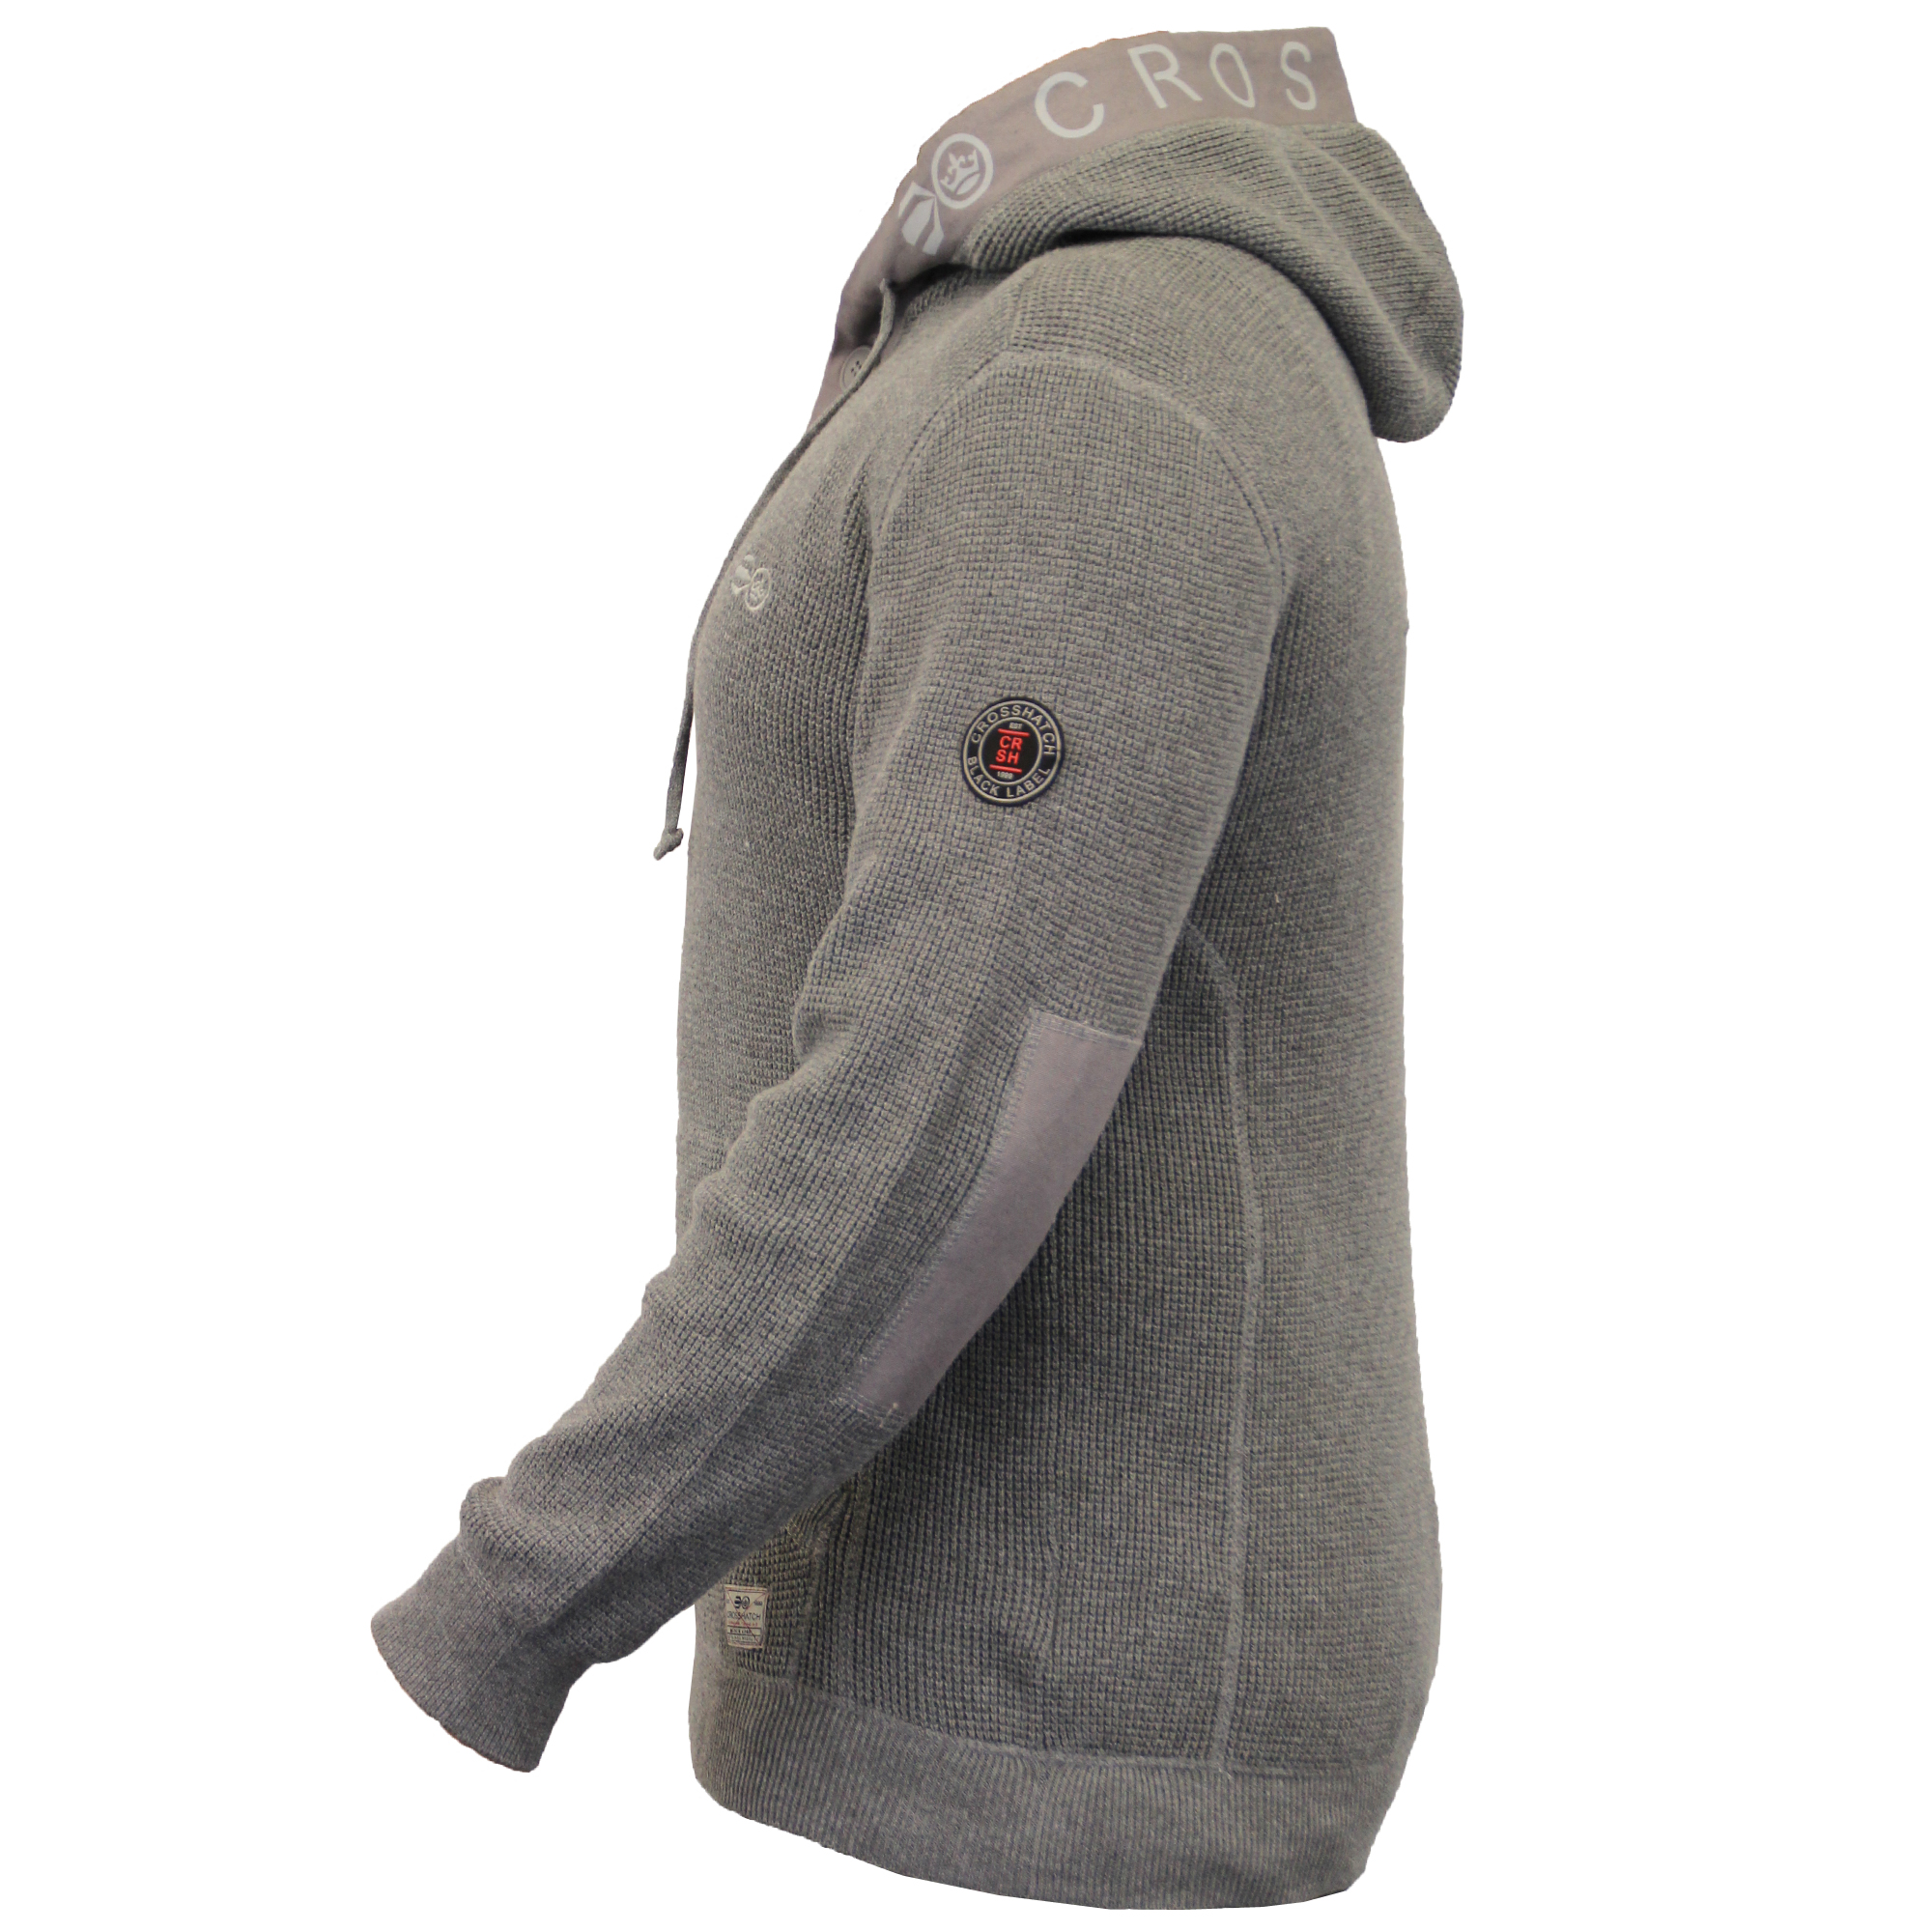 Mens Jumper Crosshatch Knitted Sweater Hooded Top Pullover ...